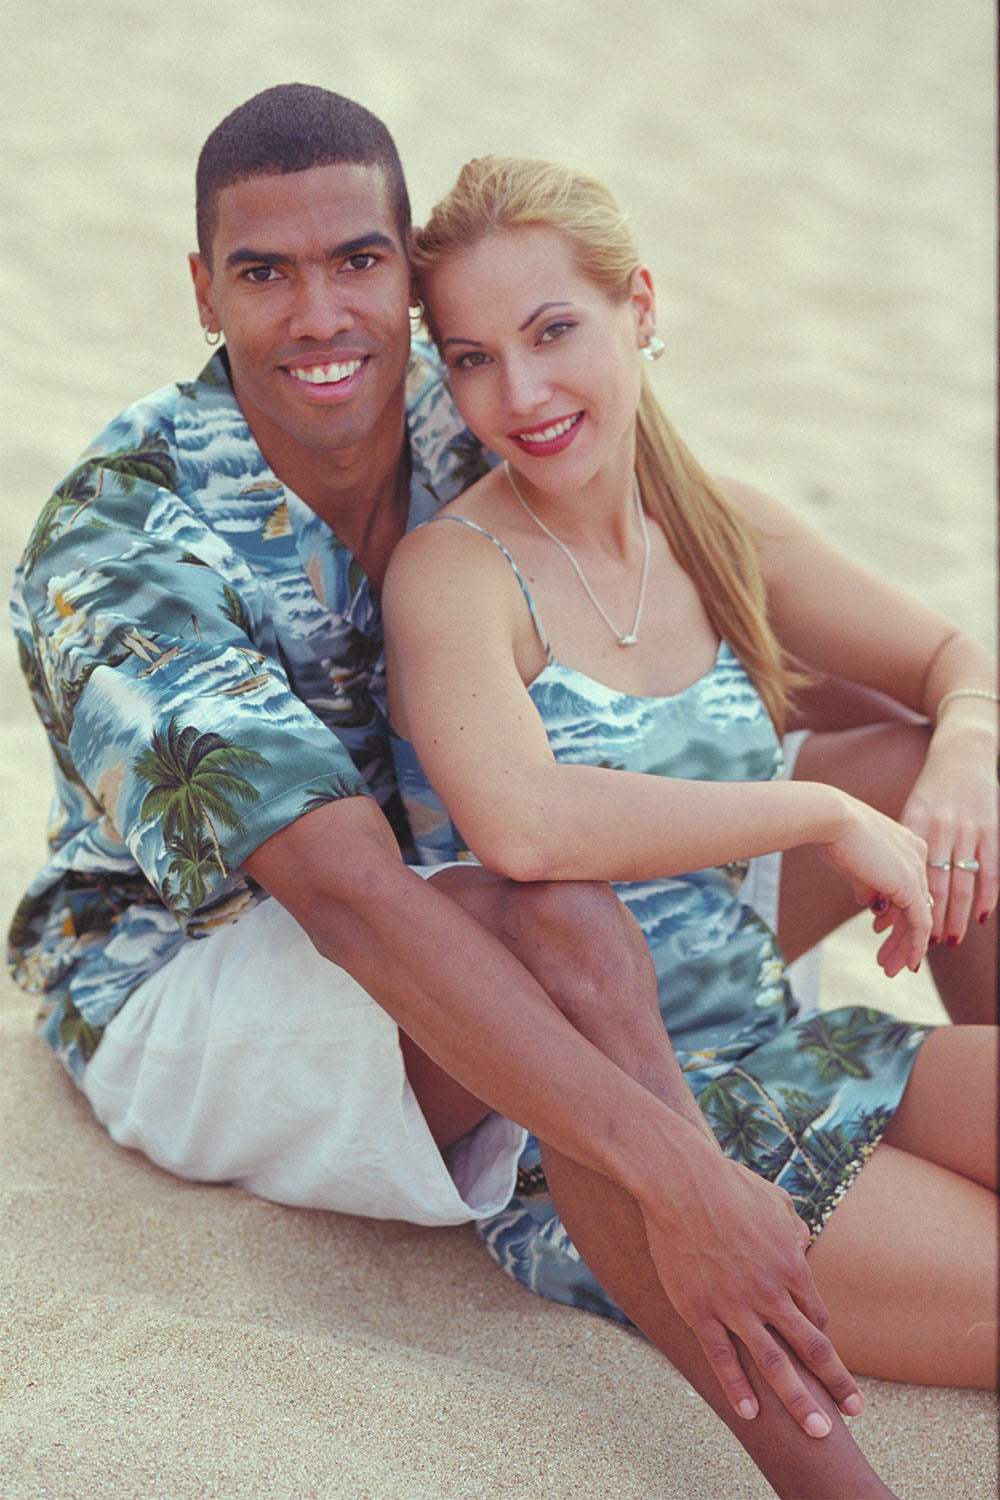 Casey and Angel in matching Hawaiian shirt and dress